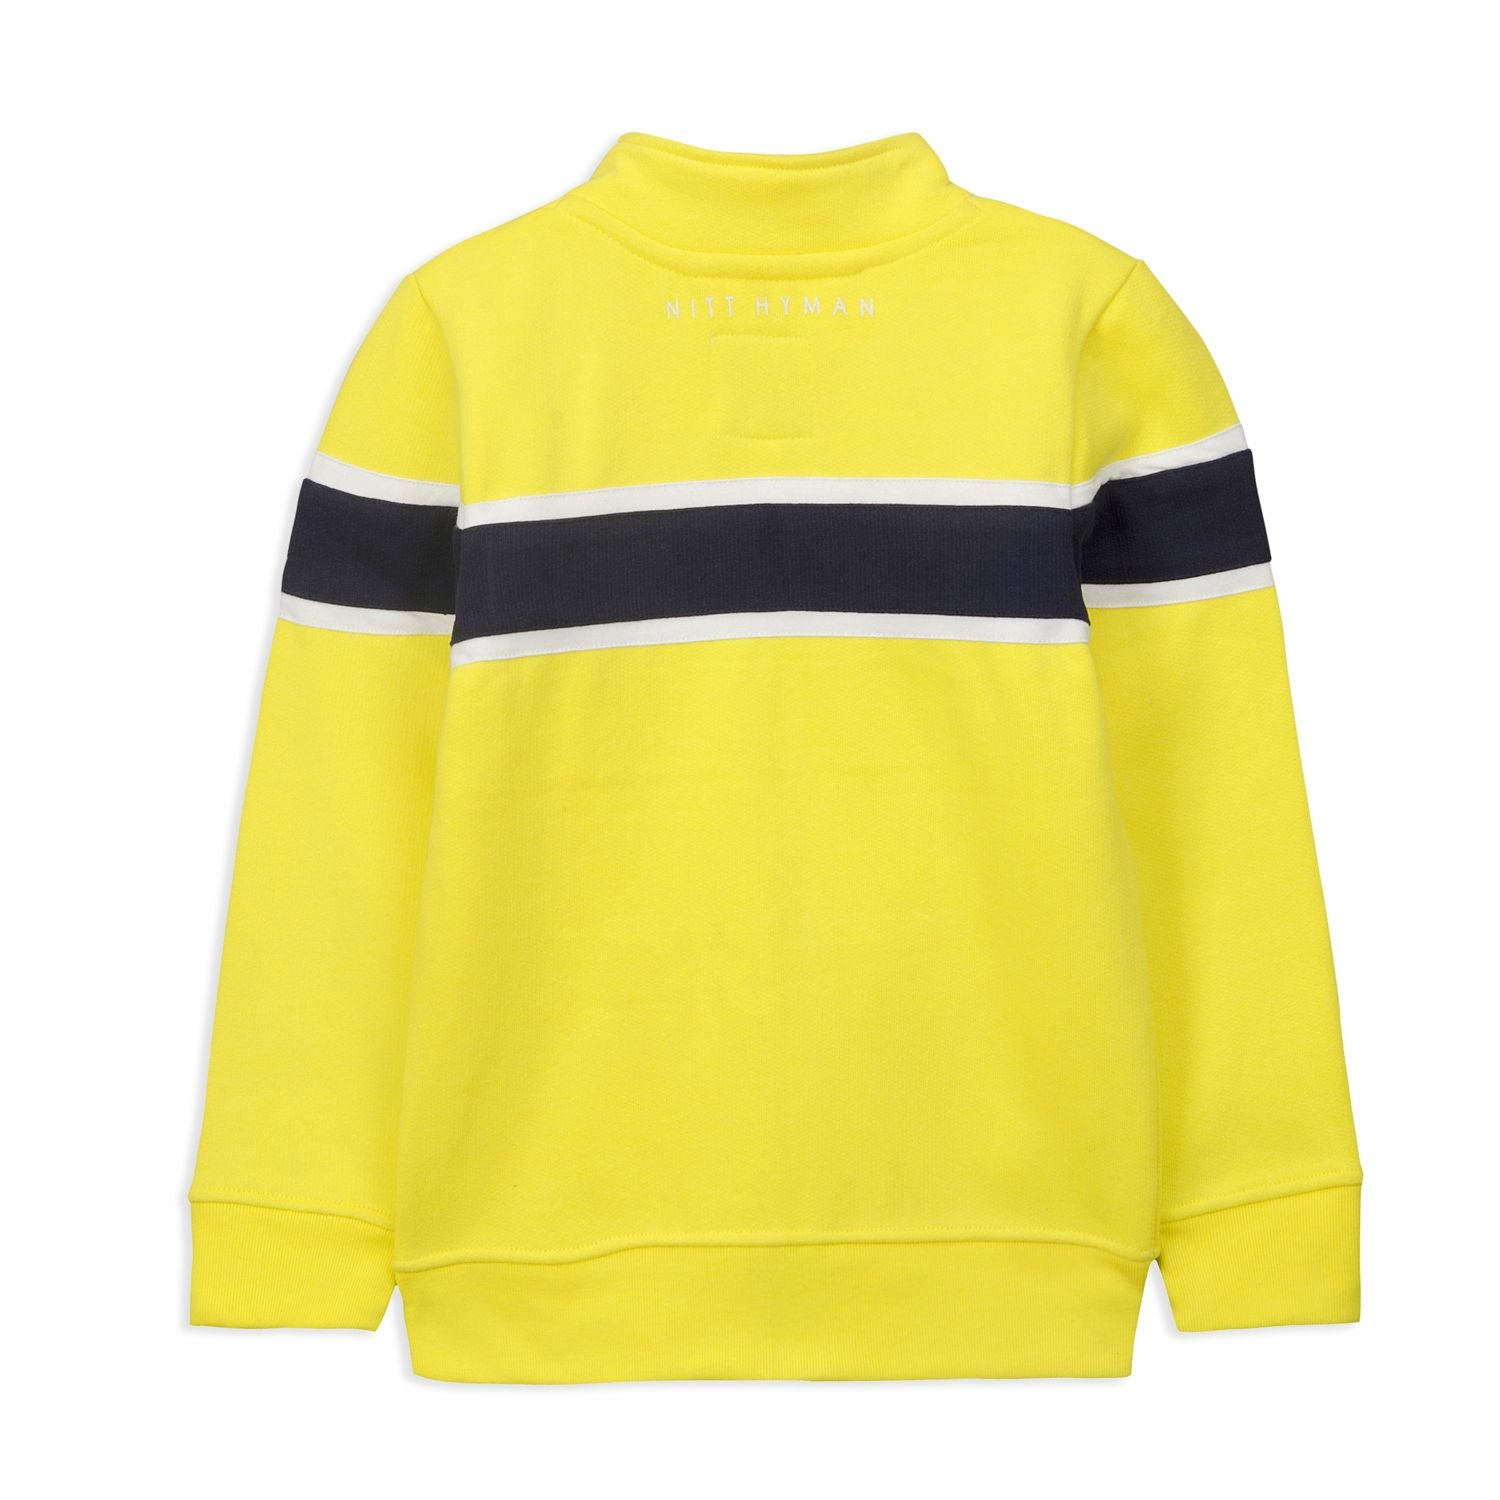 Zip Closure Sweatshirt for kids